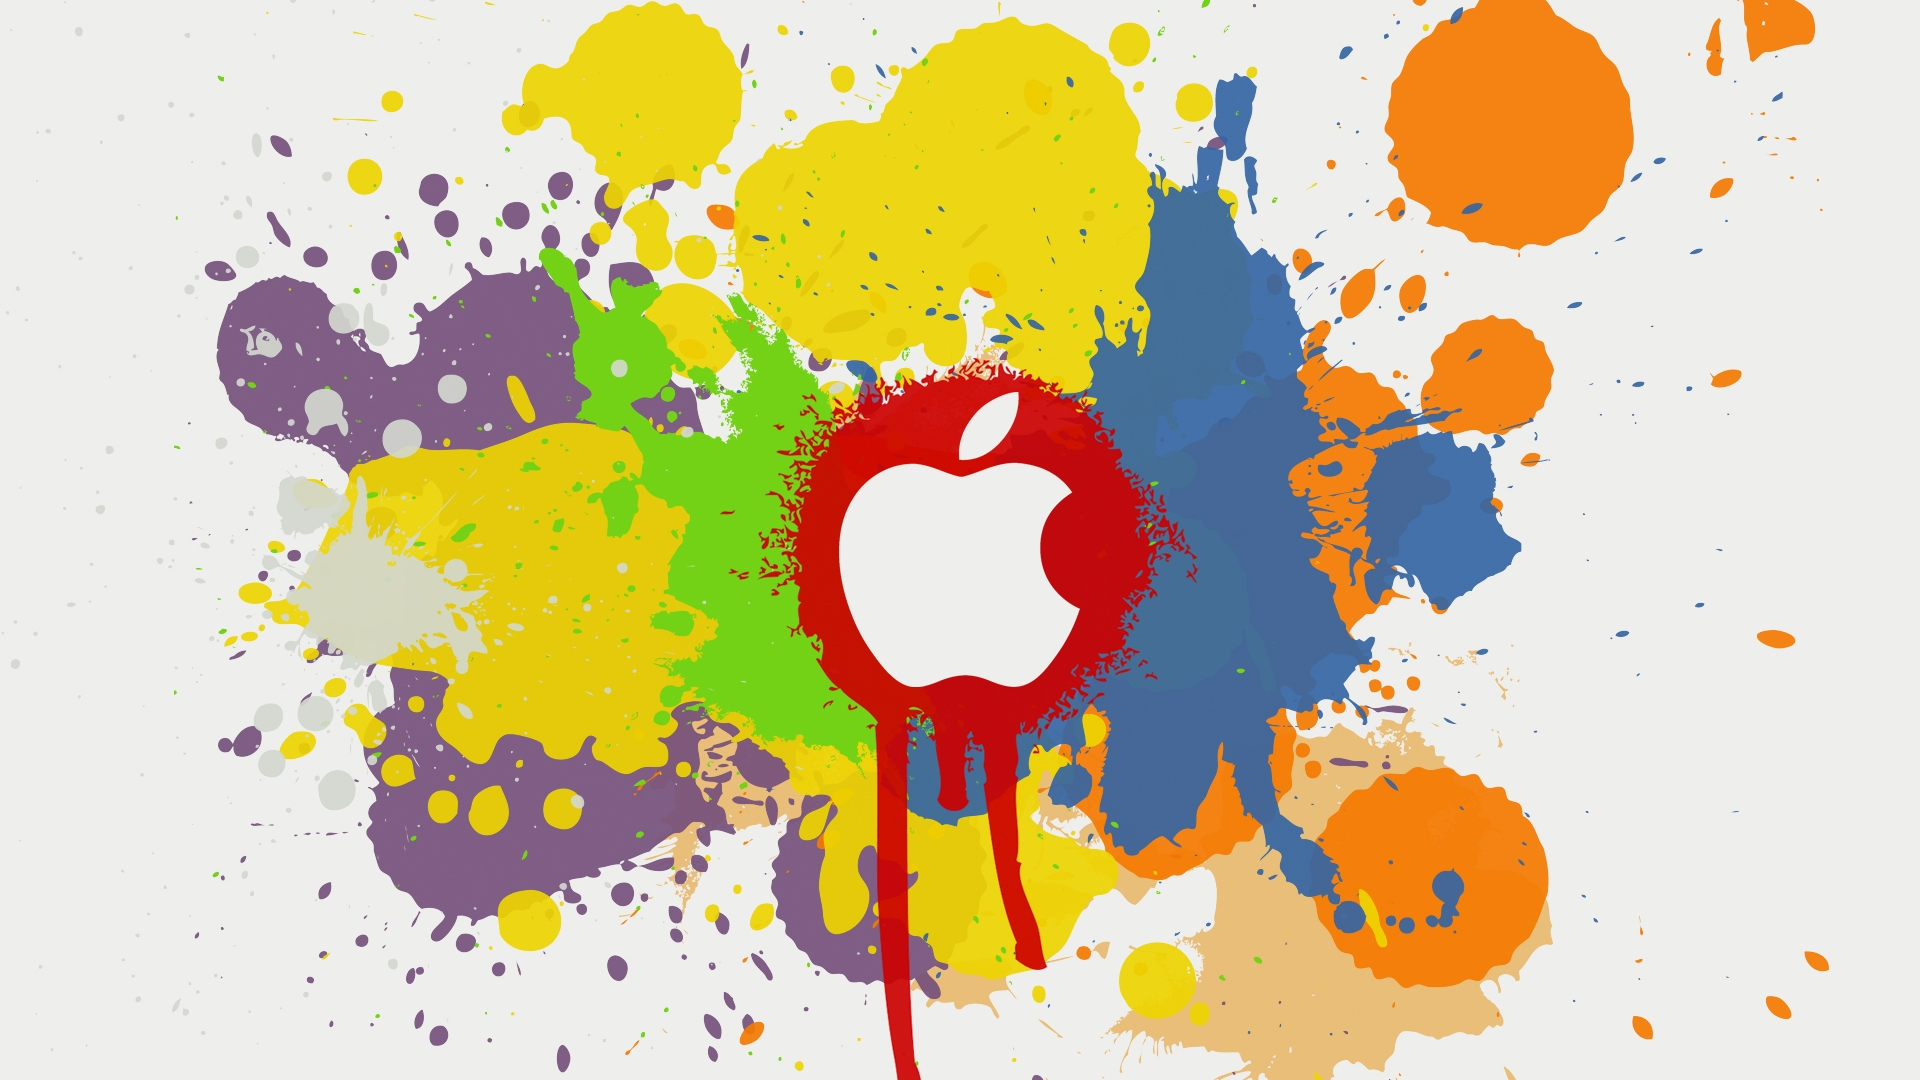 Apple Color Splash Effect Wallpaper #103544 - Resolution 1920x1080 px